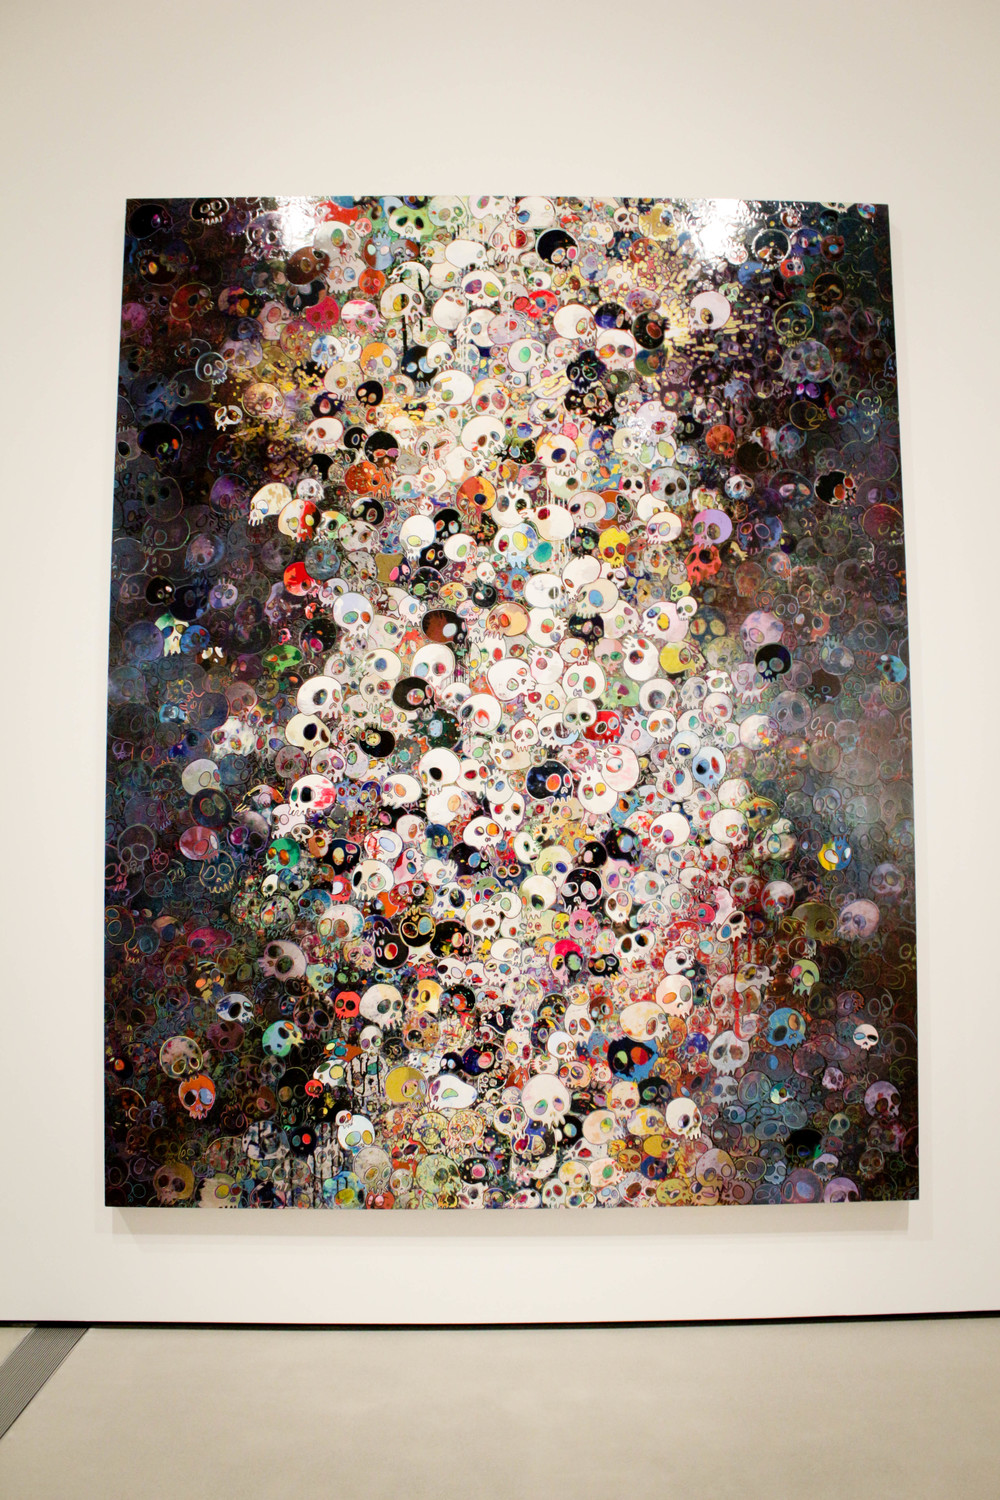 Takashi Murakami End of Line